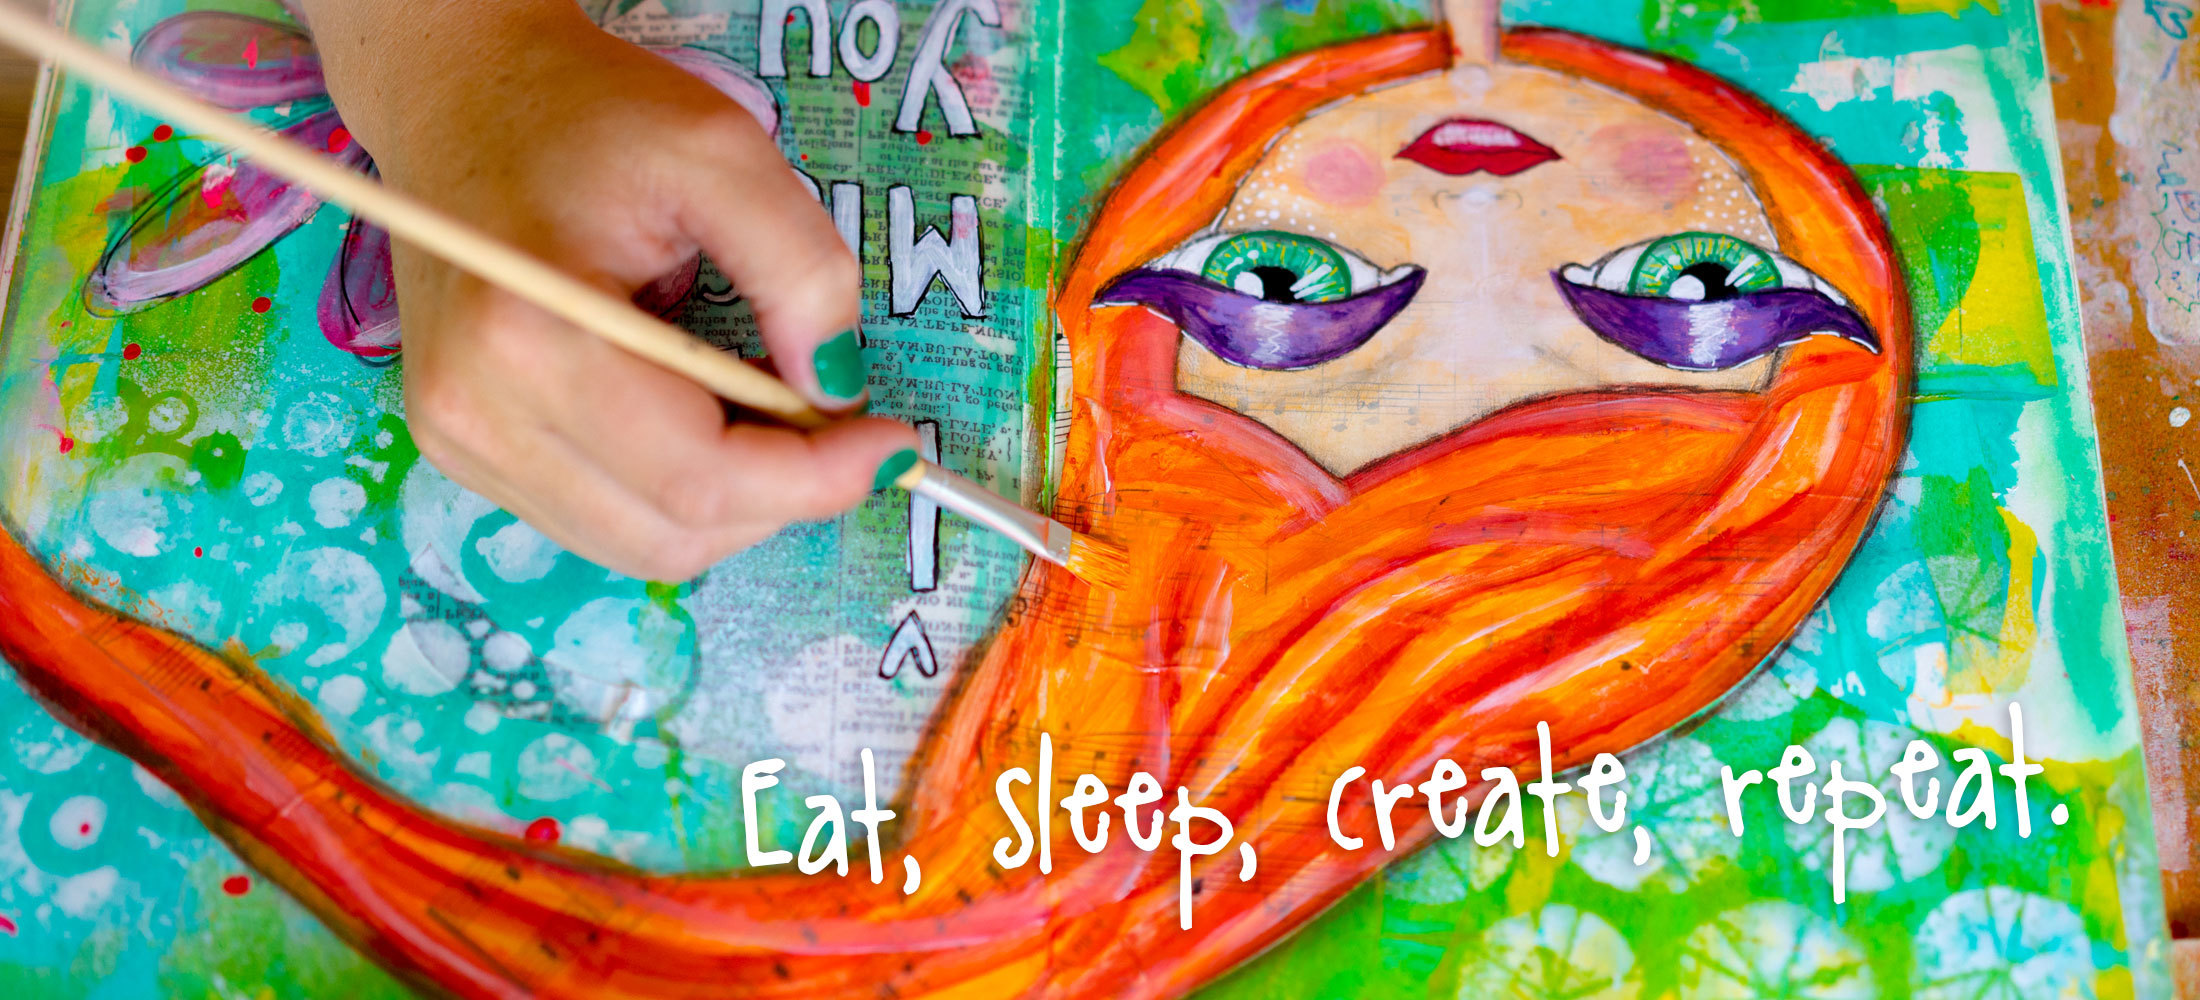 Eat, sleep, create, repeat.